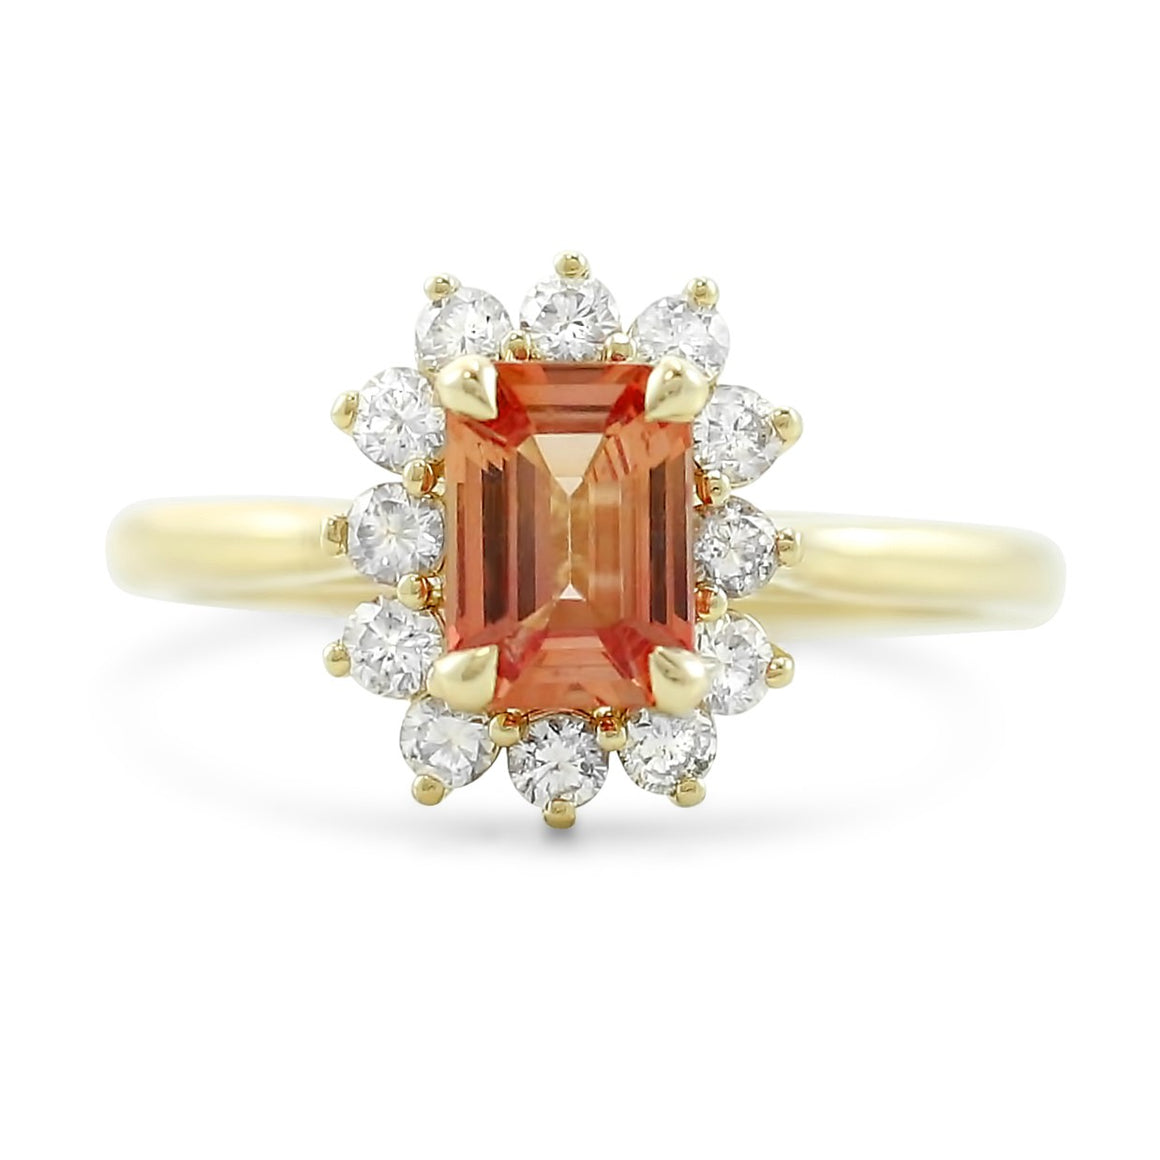 Red emerald cut sapphire ready to ship engagement ring with a diamond halo and 14k yellow gold band